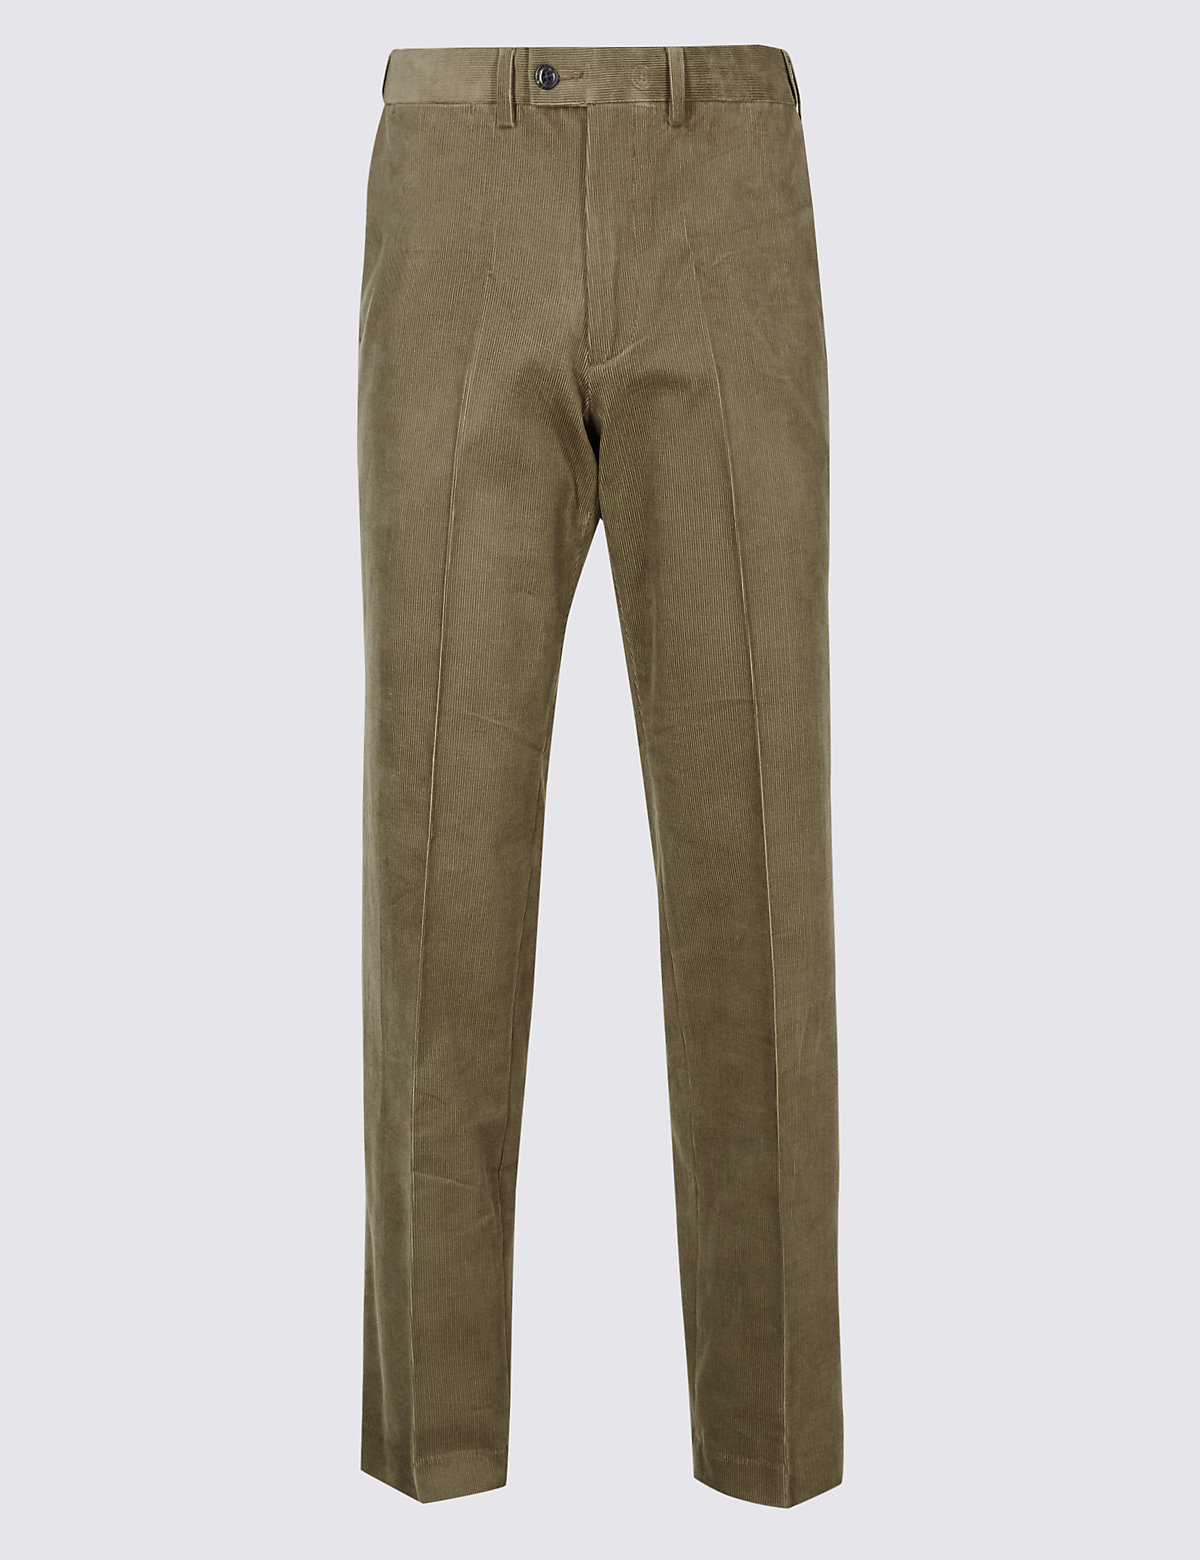 Marks & Spencer Mole Tailored Fit Cotton Rich Corduroy Trousers